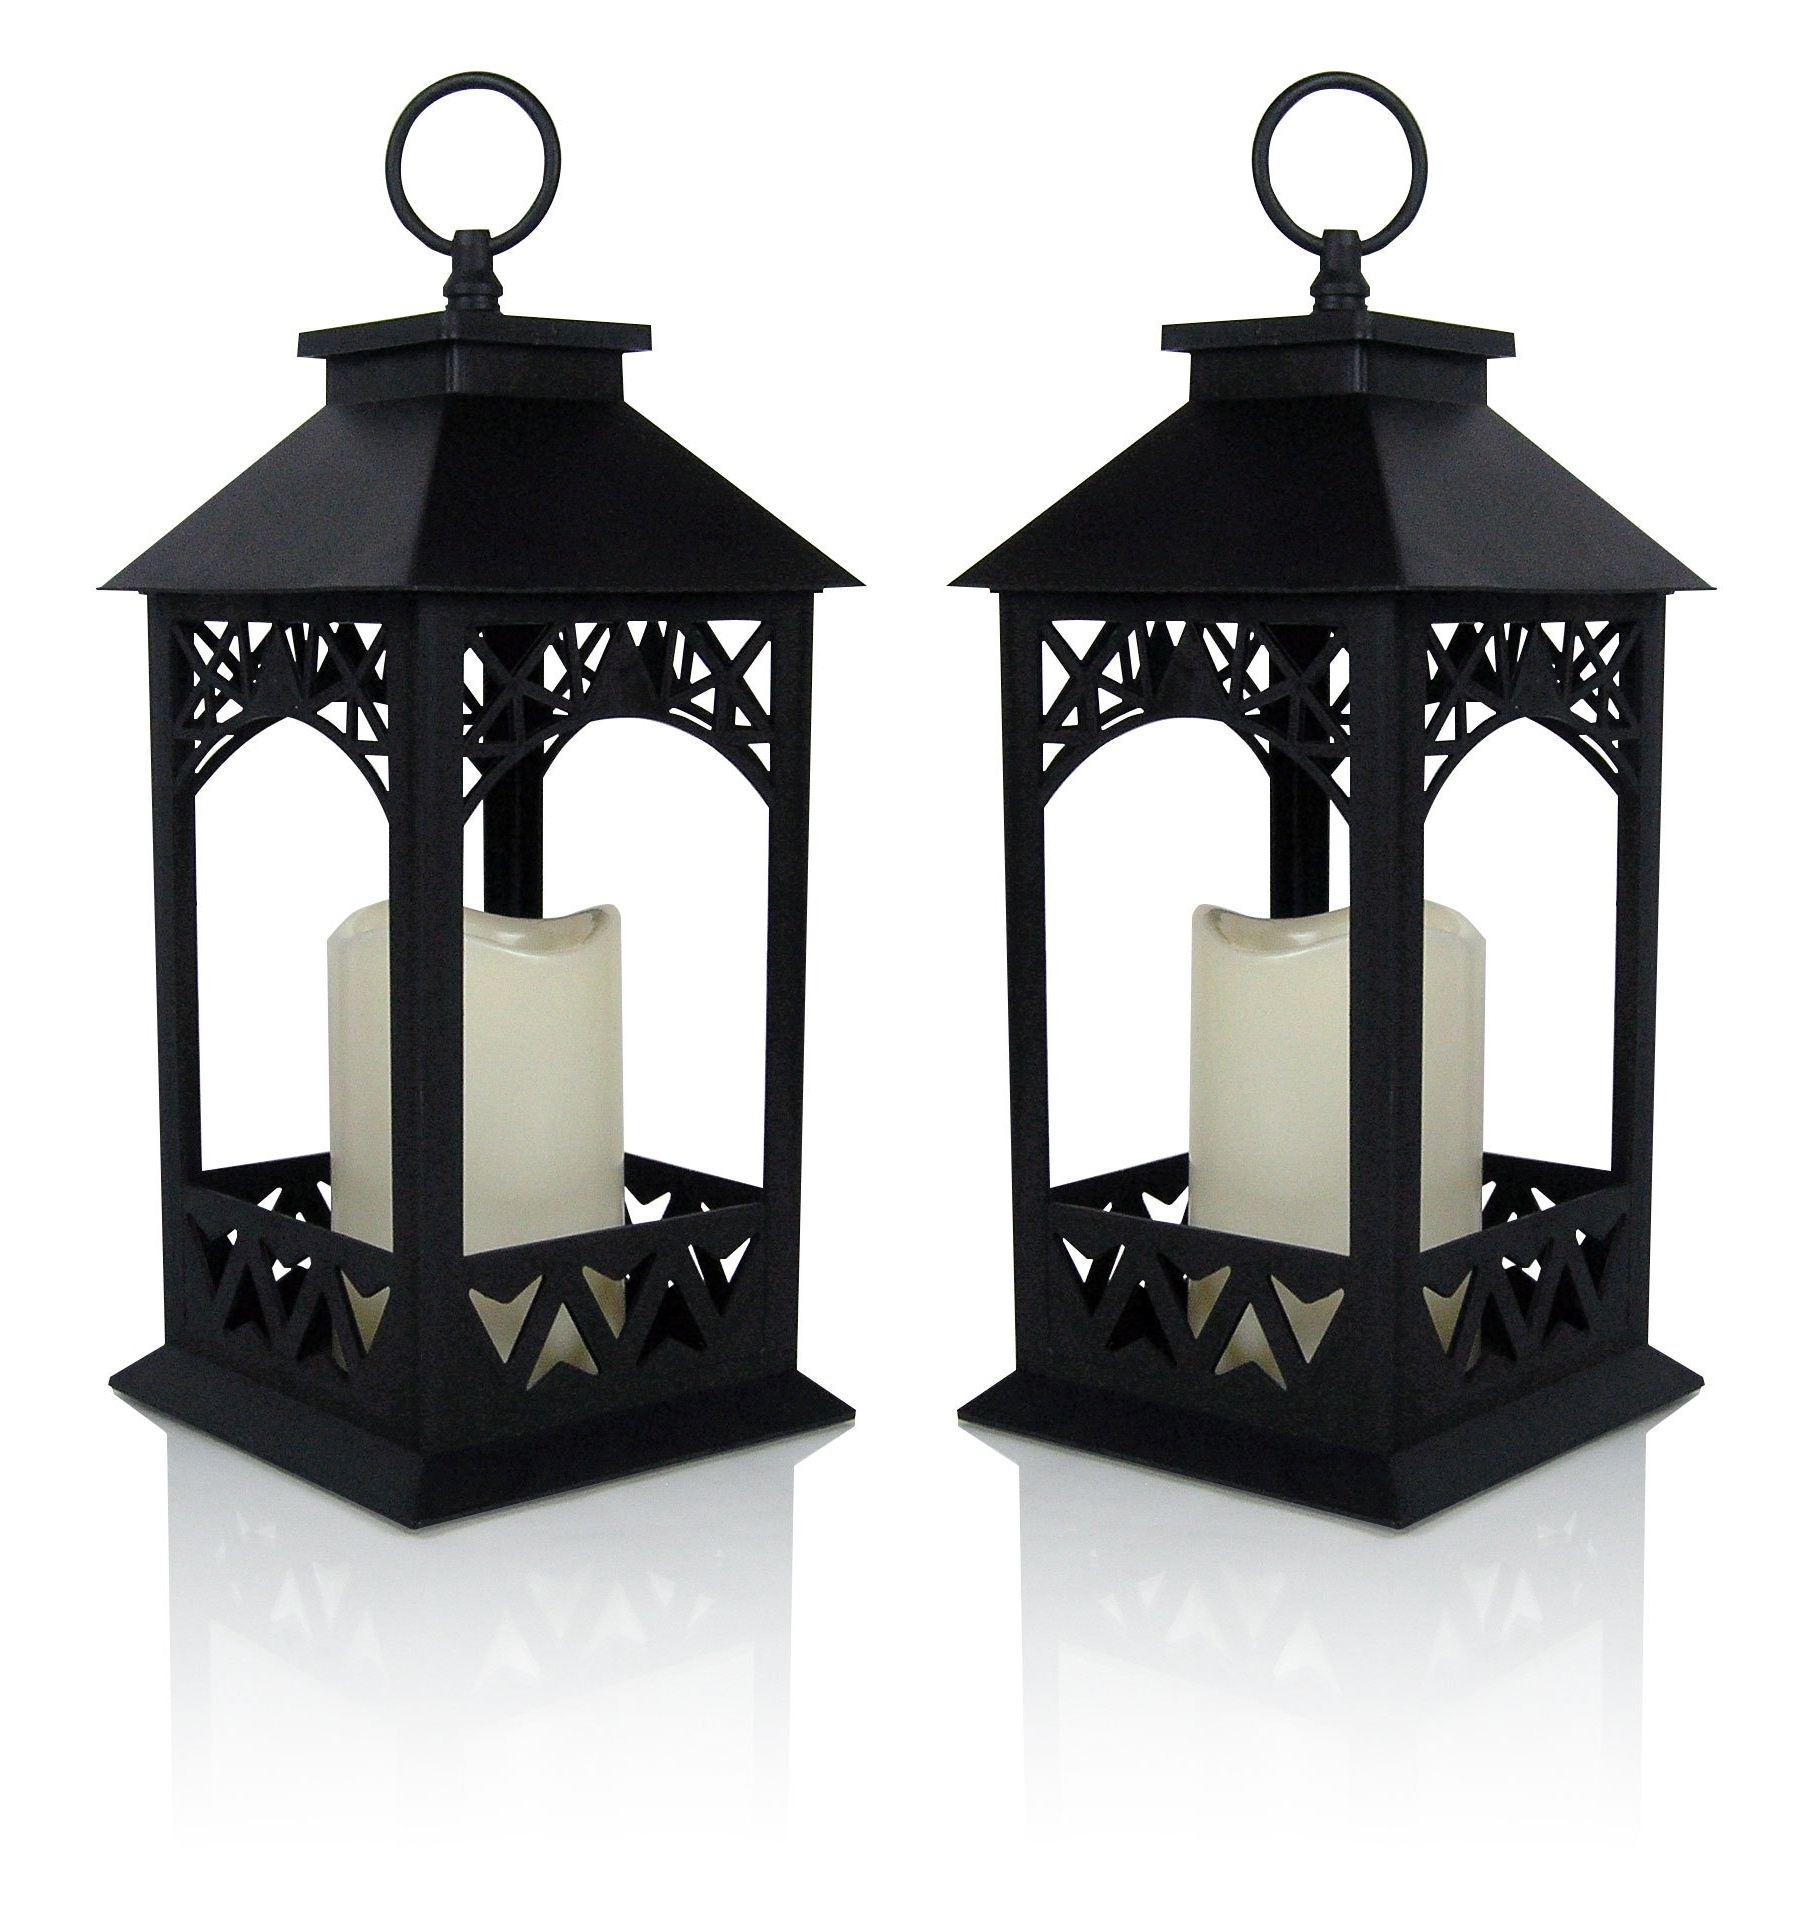 Cheap Outdoor Lanterns Candle, Find Outdoor Lanterns Candle Deals On Intended For Widely Used Outdoor Timer Lanterns (View 2 of 20)